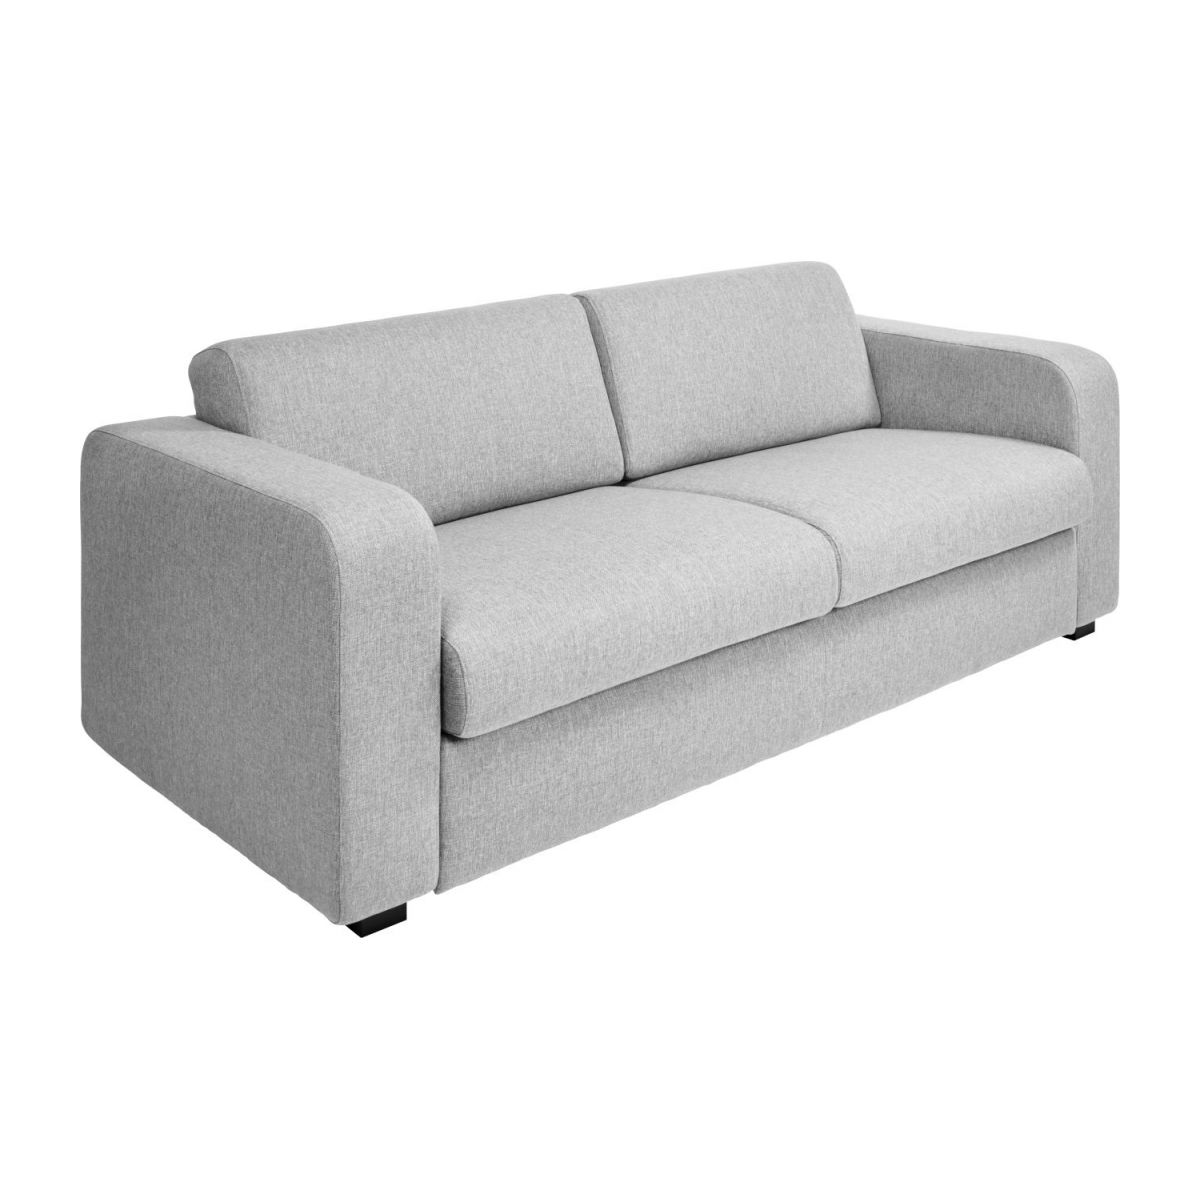 Ddr Schlafsofa Beautiful Stock: 2sitzer Schlafsofa. Trendy Sitzer Sofa Tiffany With